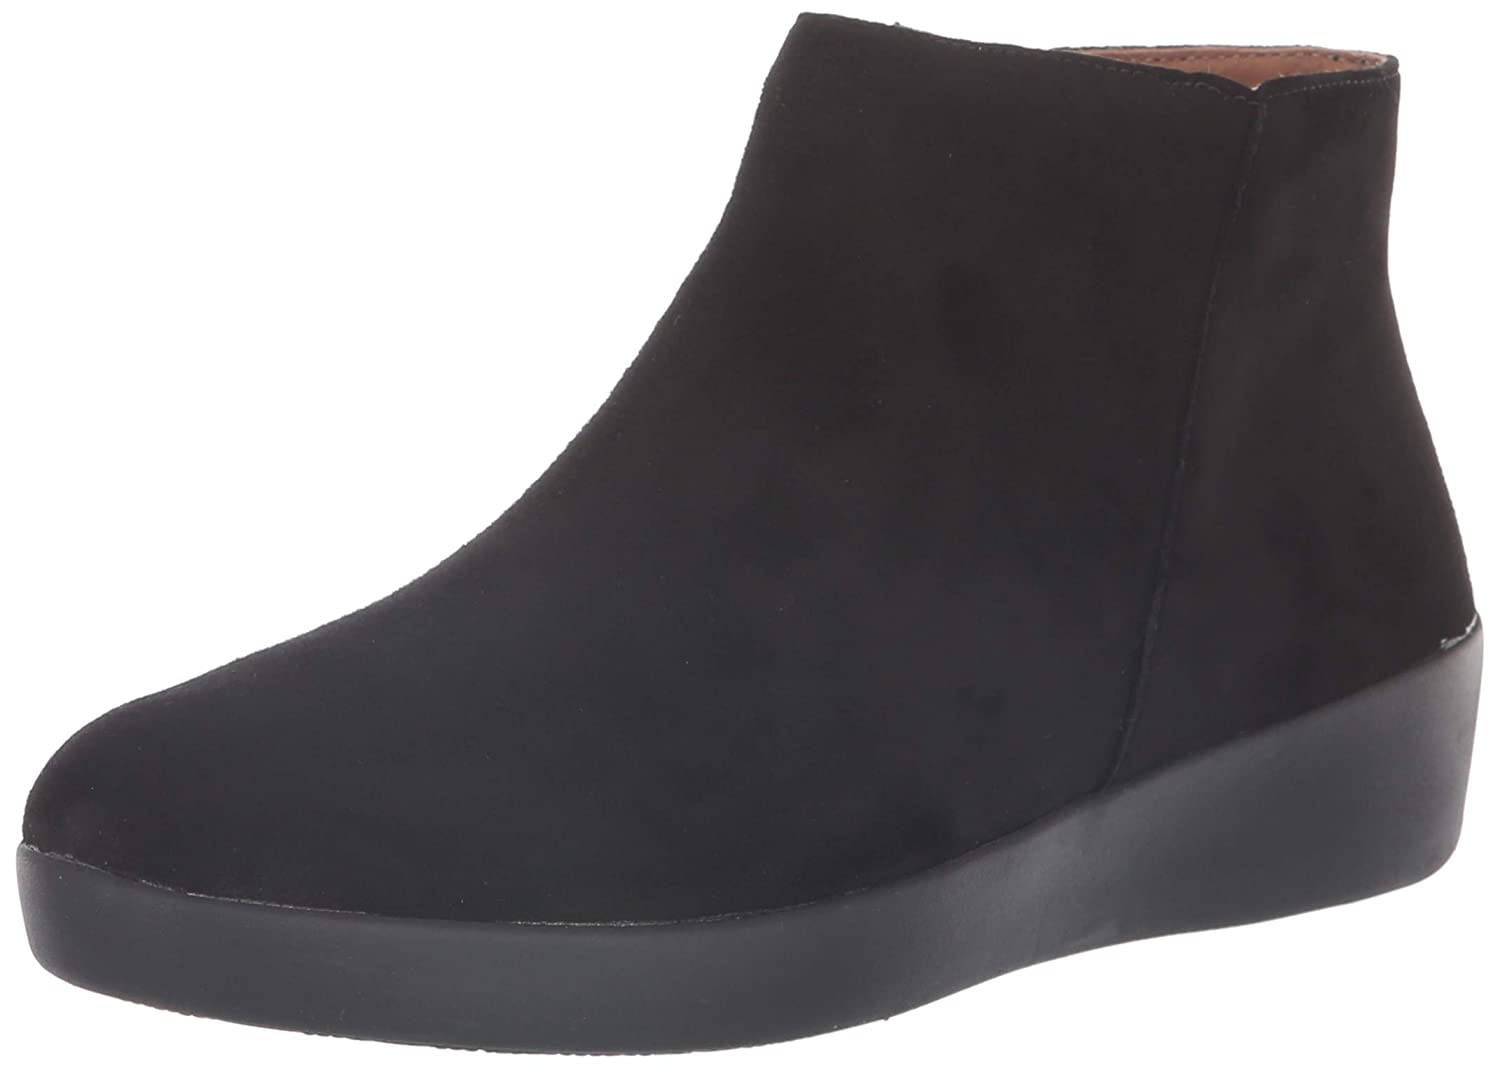 92b6da73f8f7d0 FitFlop Women s Sumi Suede SupercomFF Ankle Bootie Boot Black Size 8   Amazon.co.uk  Shoes   Bags